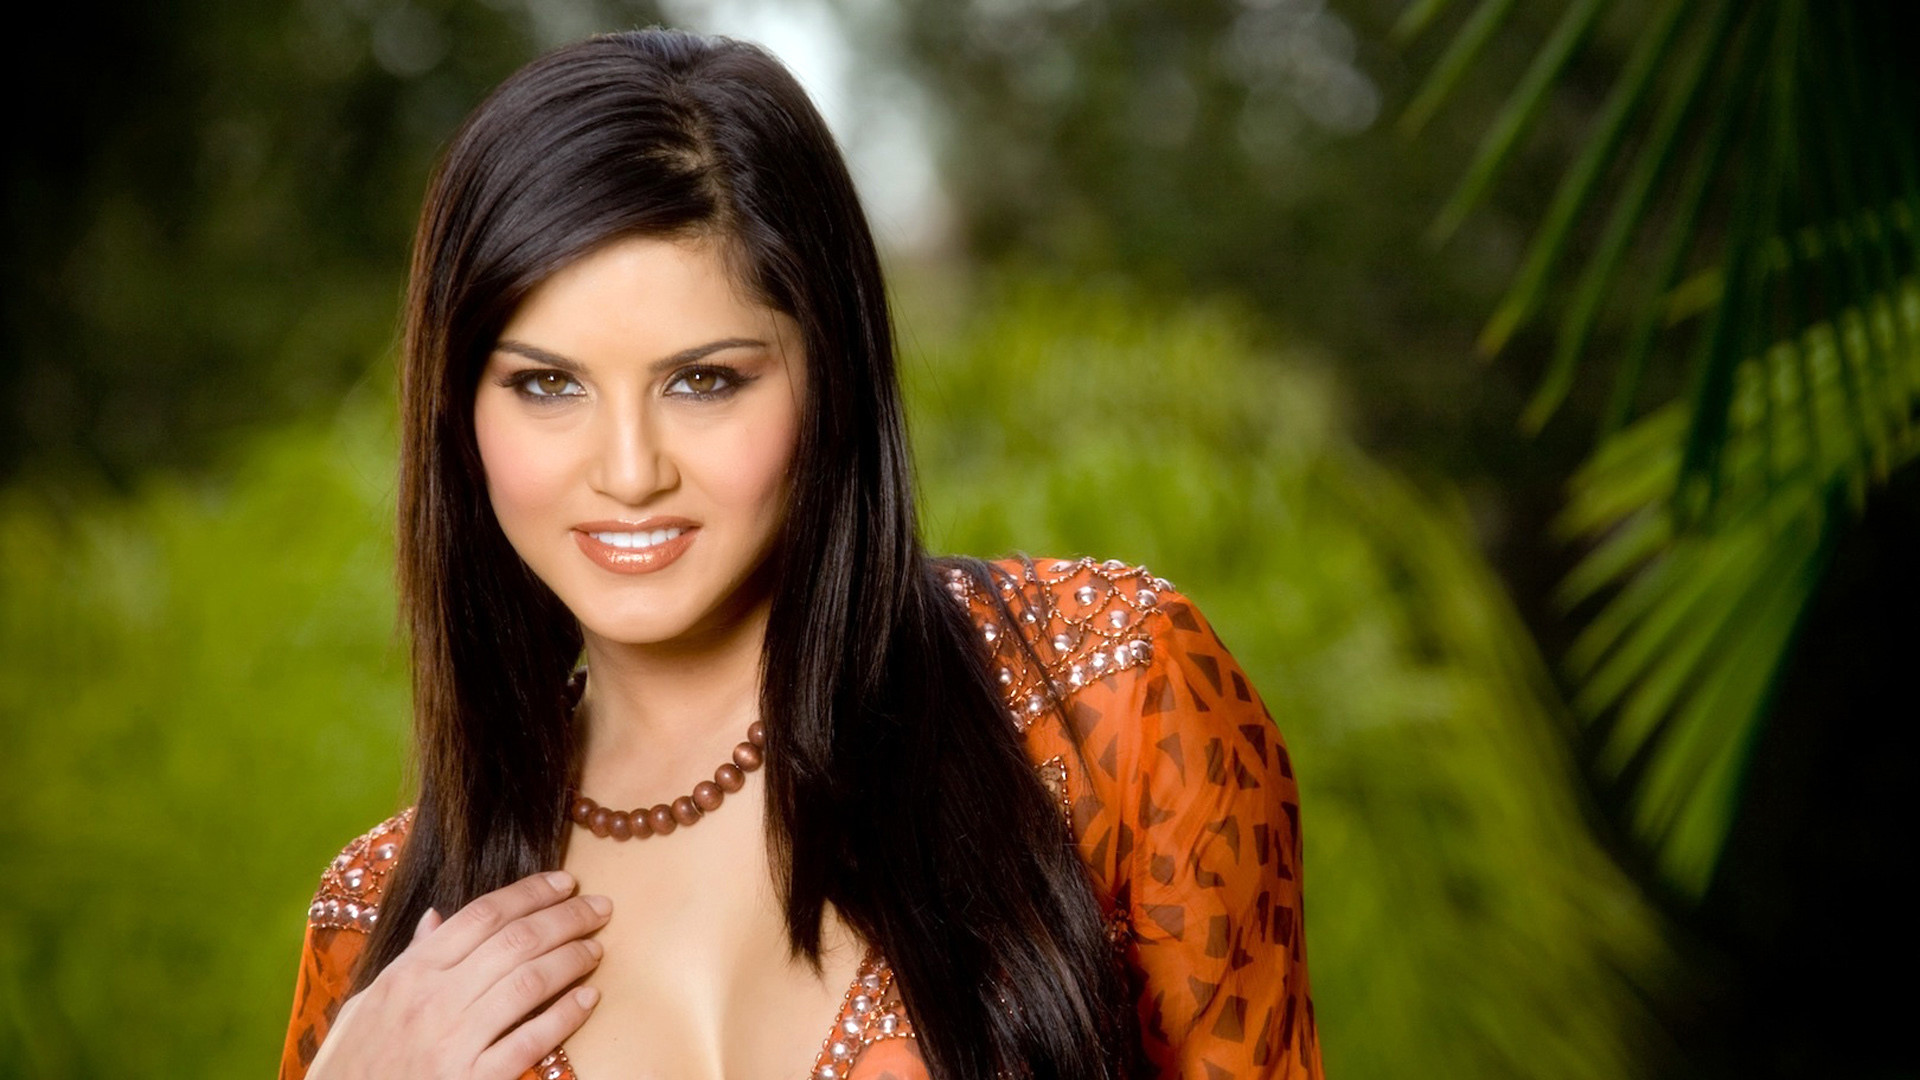 sunny leone wallpapers actress bollywood latest desktop indian celebrities widescreen hdwallpapers unknown bikini lady